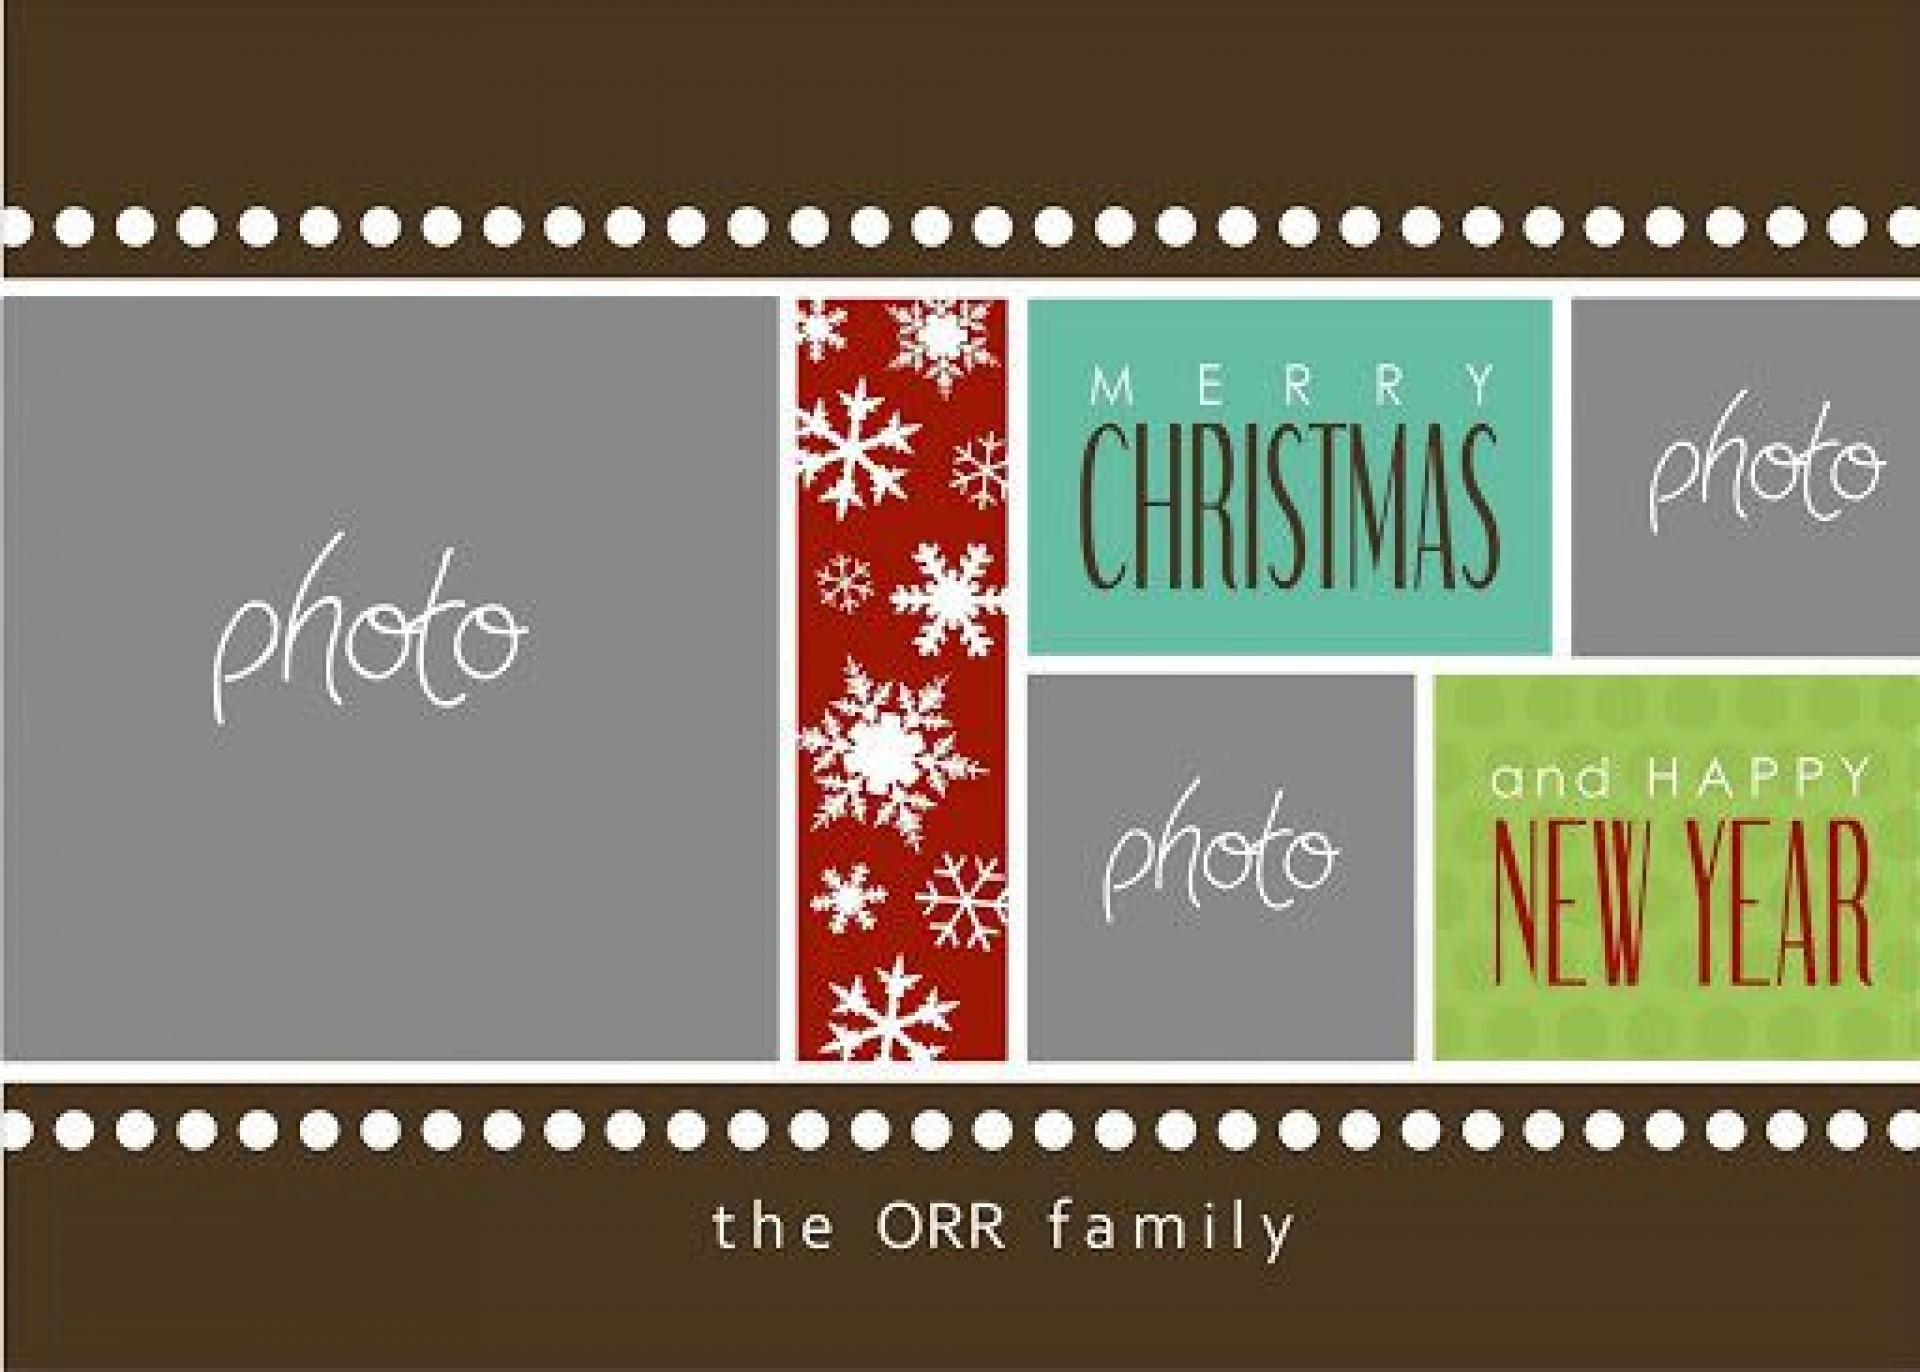 009 Impressive Photoshop Christma Card Template High Def  Templates Xma Funny1920